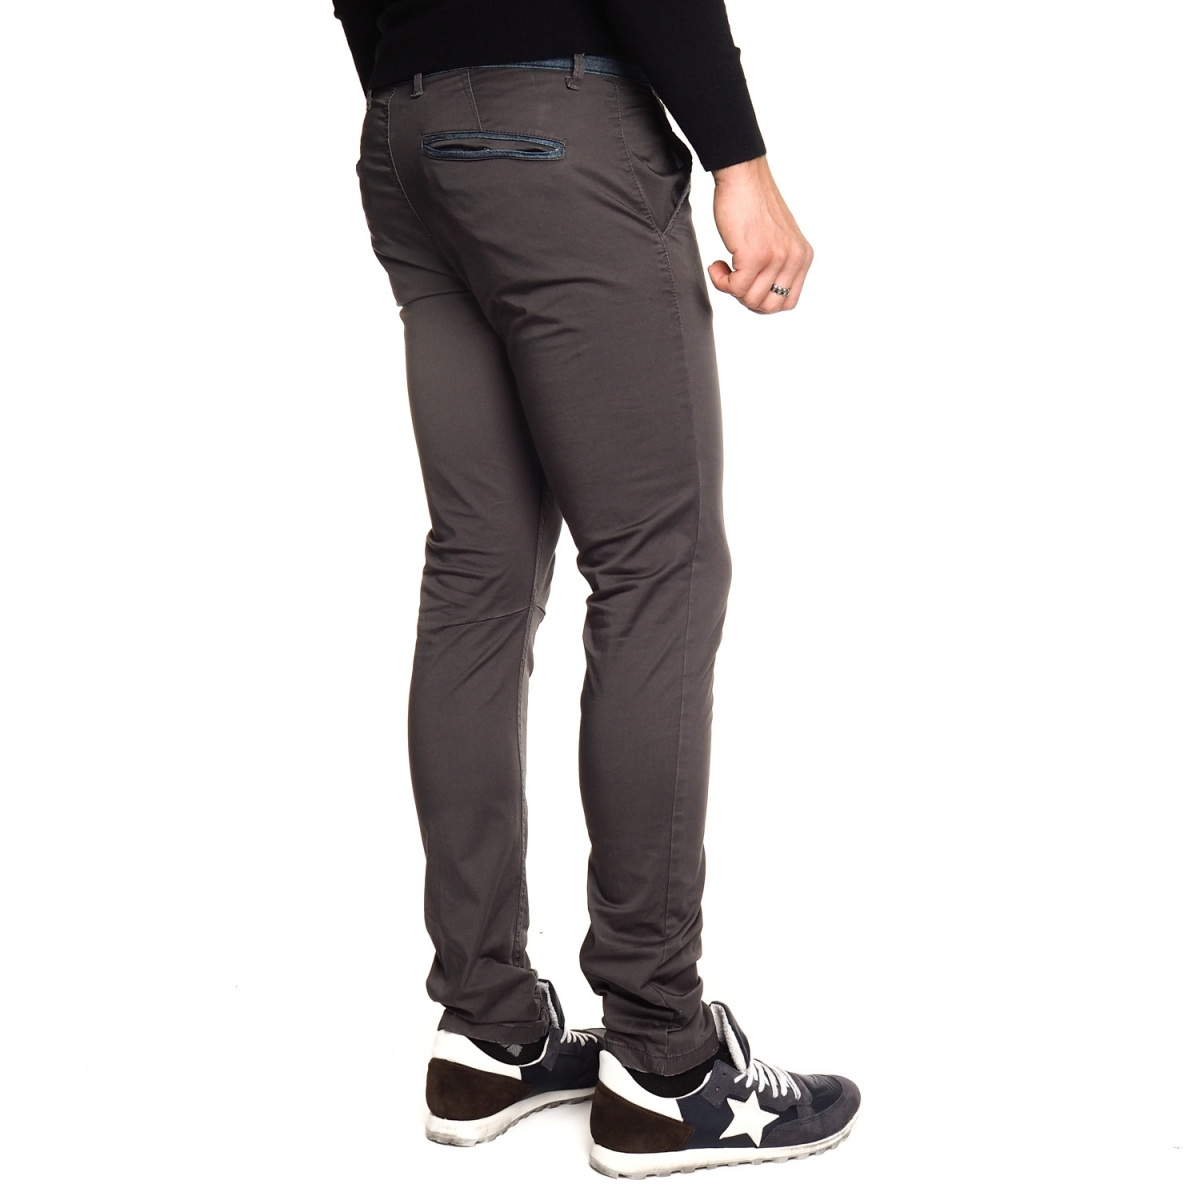 men's clothing sales Pantaloni OUTLET 14315 BLU Cafedelmar Shop